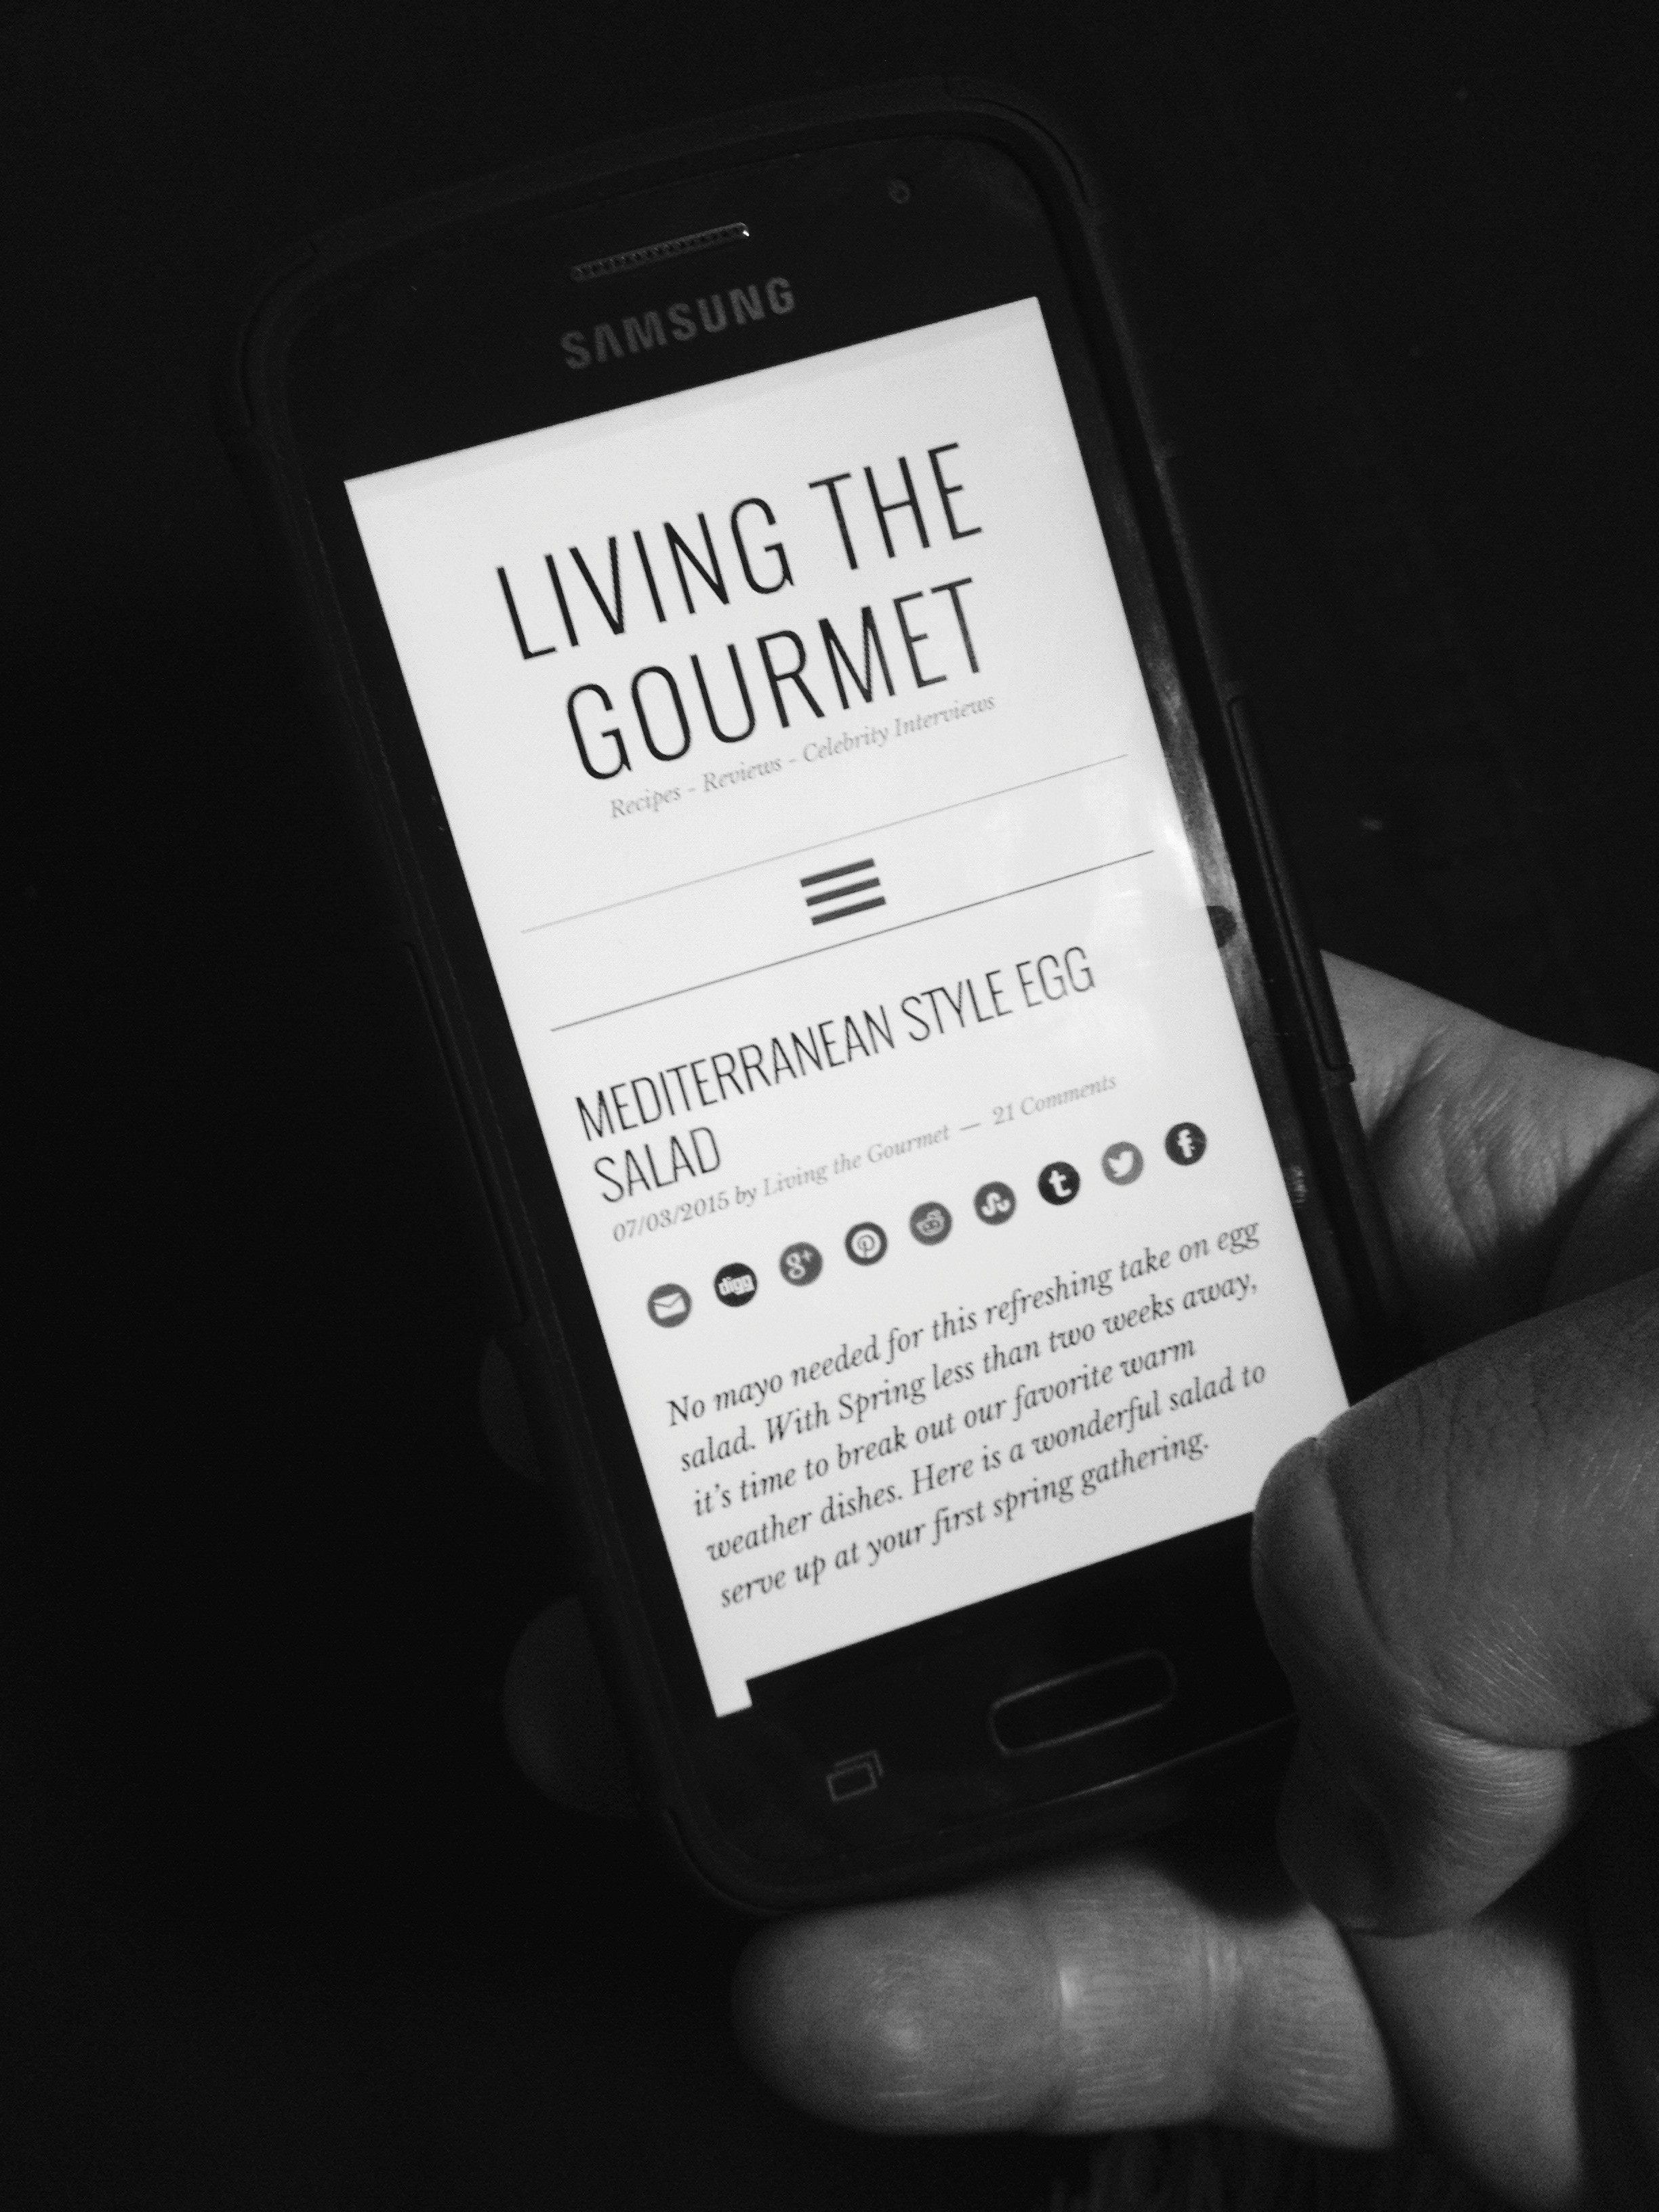 Living the Gourmet: Blogging Behind the Scenes